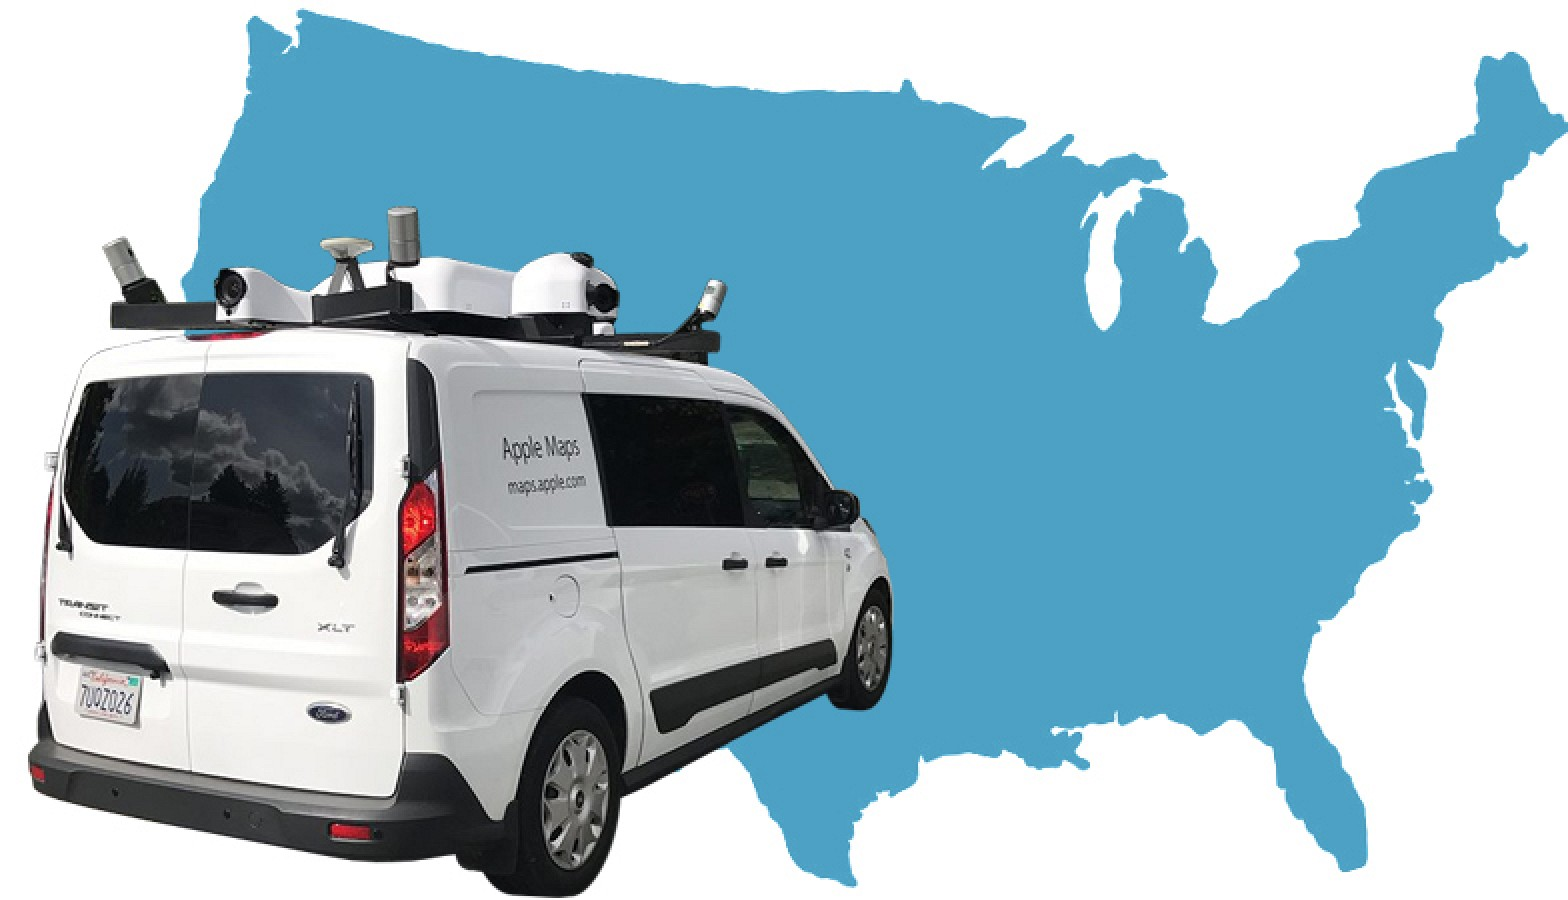 Apple Maps Vehicles Reach 45 States, Revamped Data to Roll Out Across U.S. Over the Next Year